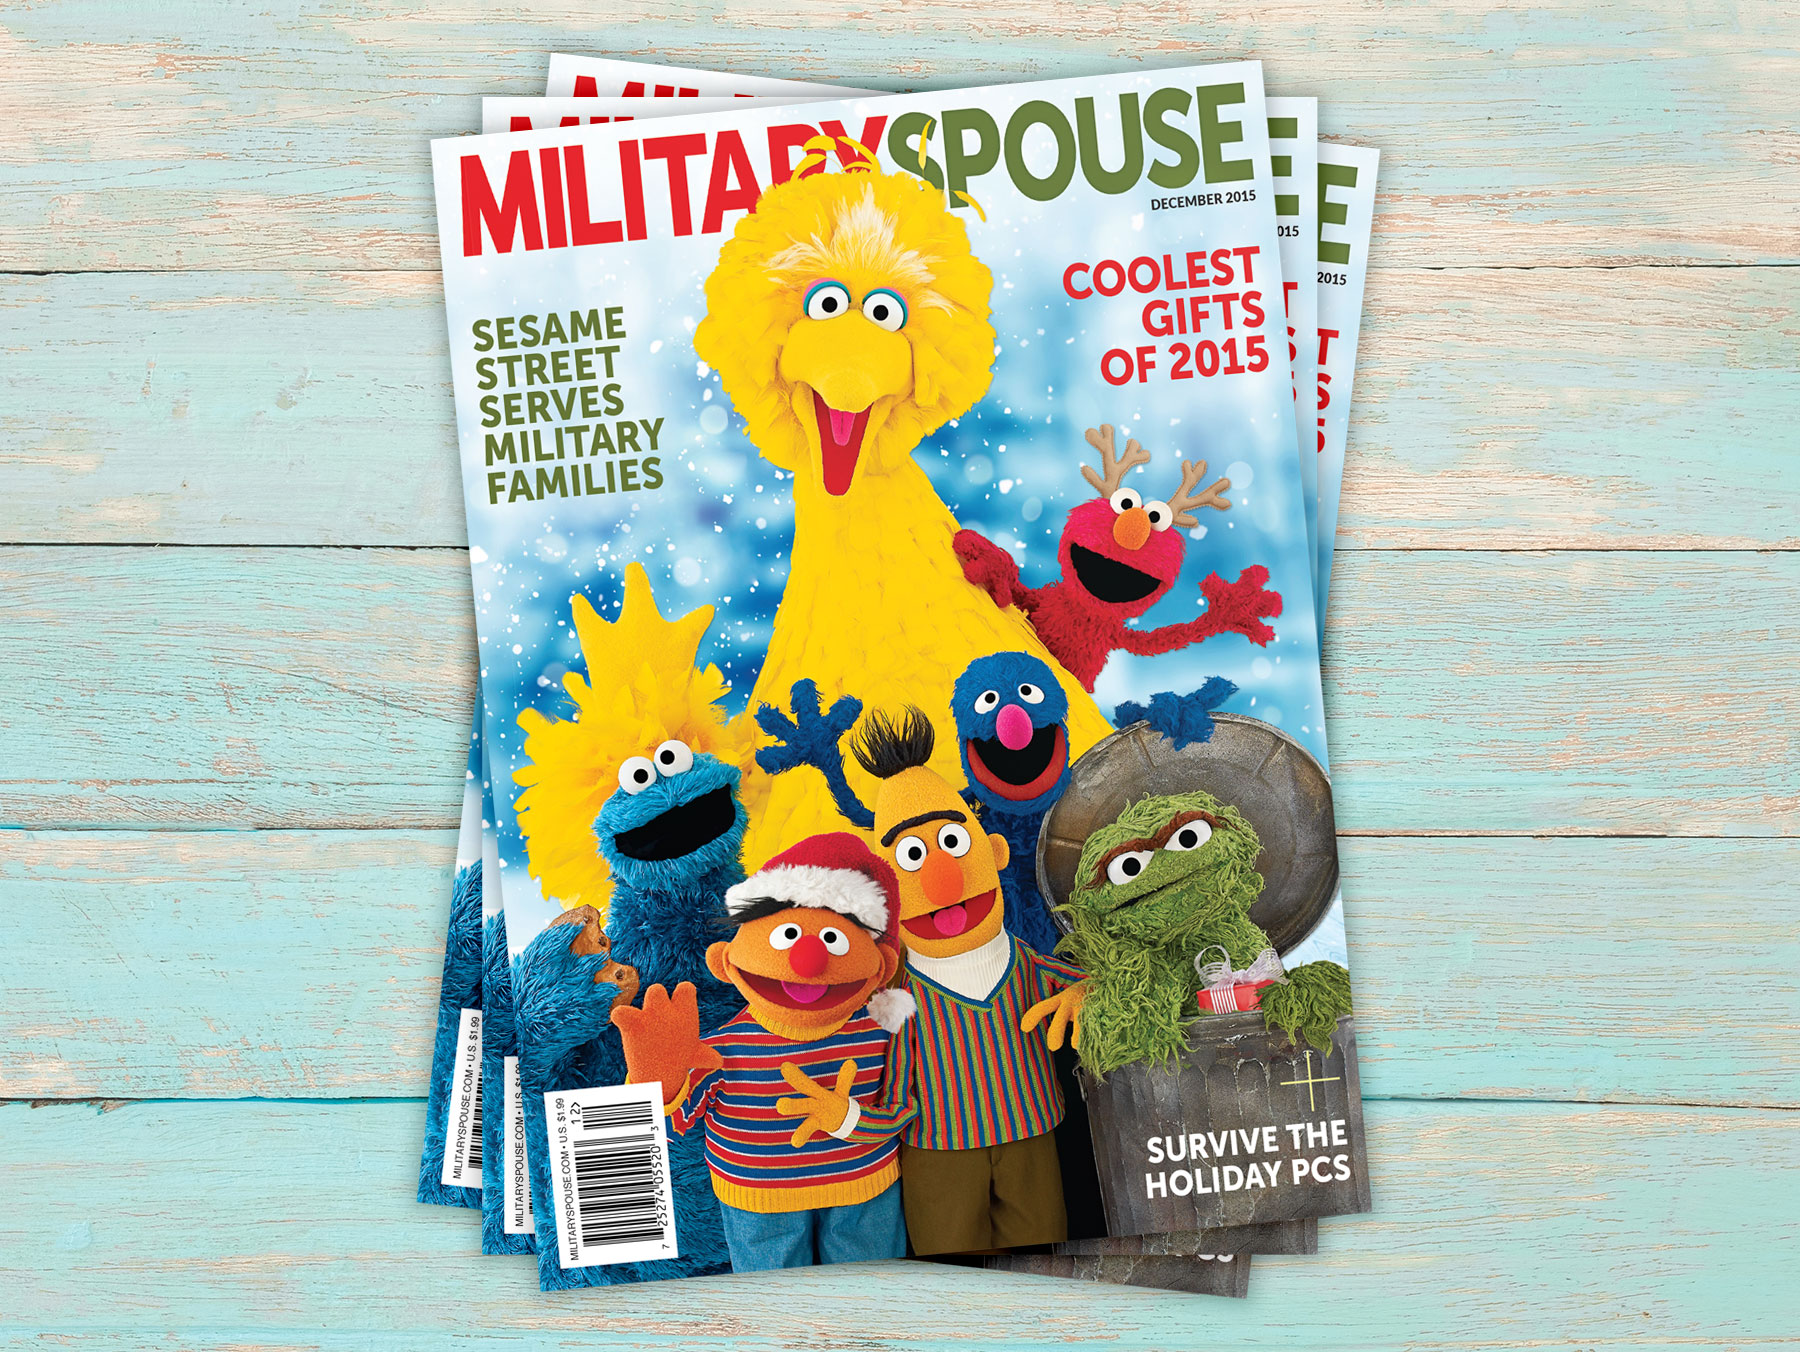 Sesame Street Military Spouse Magazine